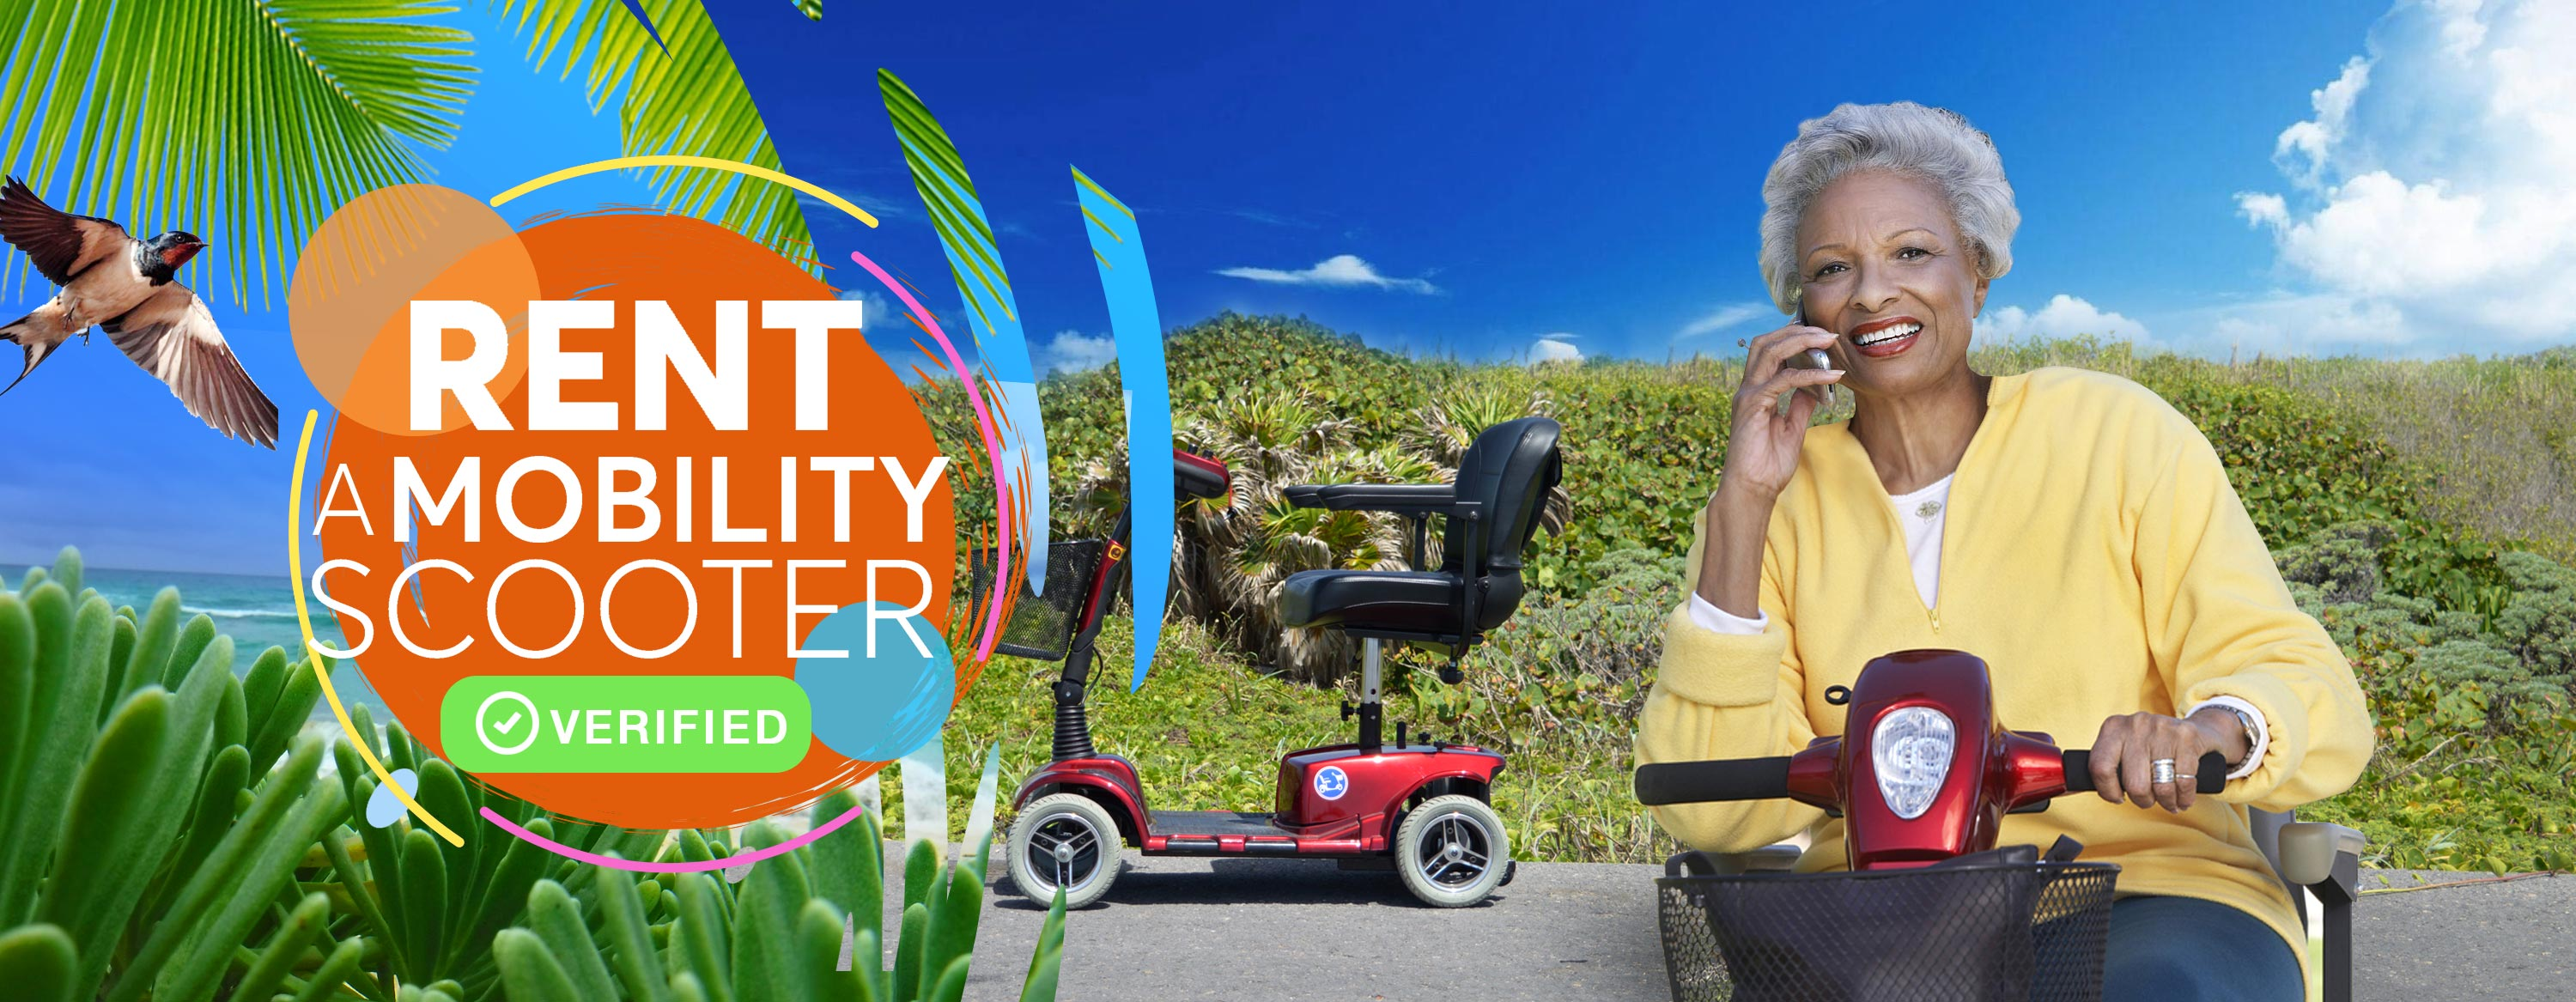 Rent a Mobility Scooter Cozumel